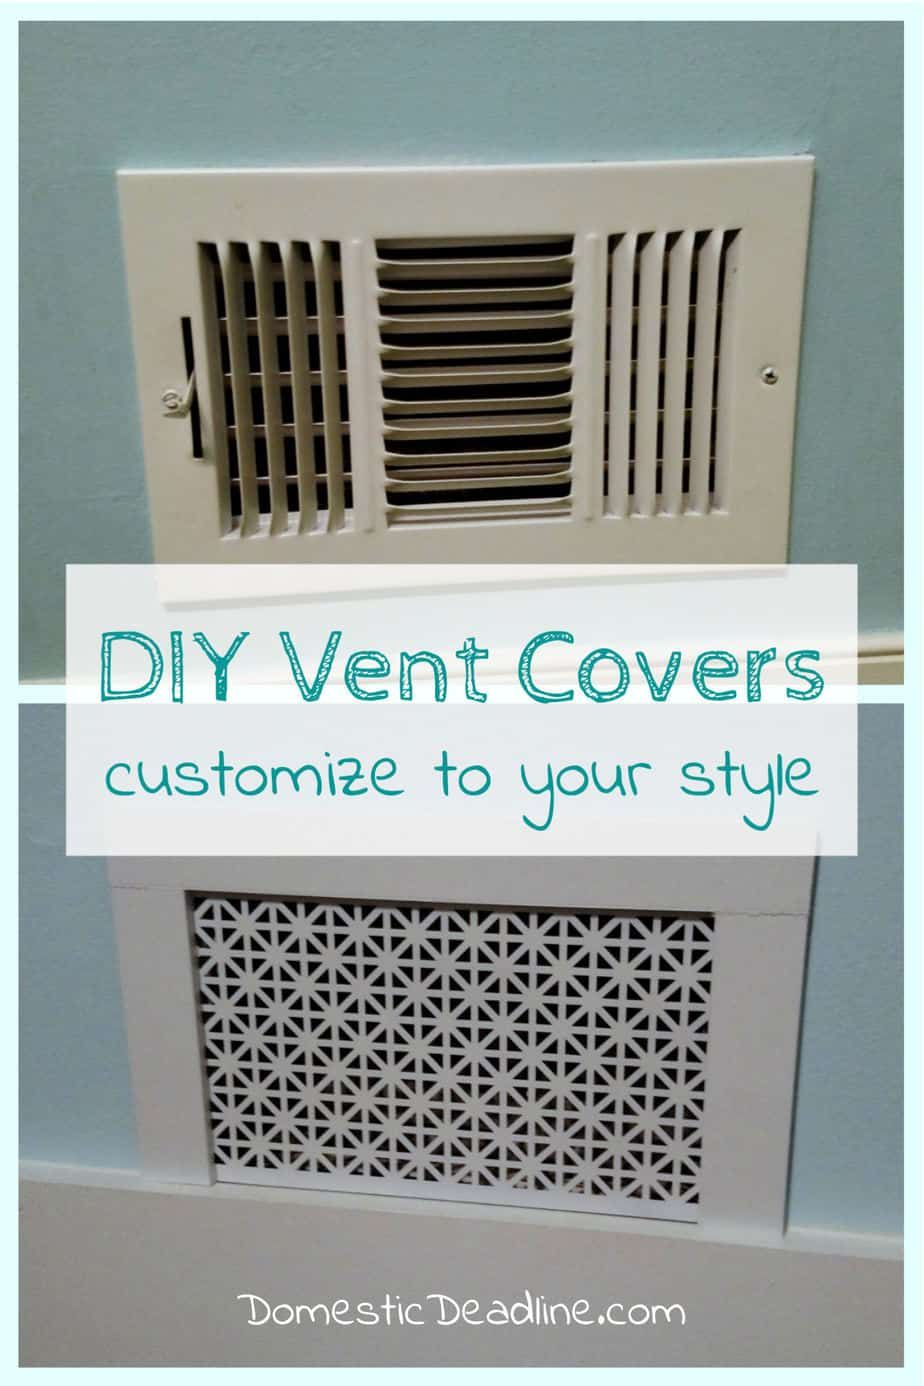 How To Make Custom Air Vent Covers In 2020 Vent Covers Diy Vent